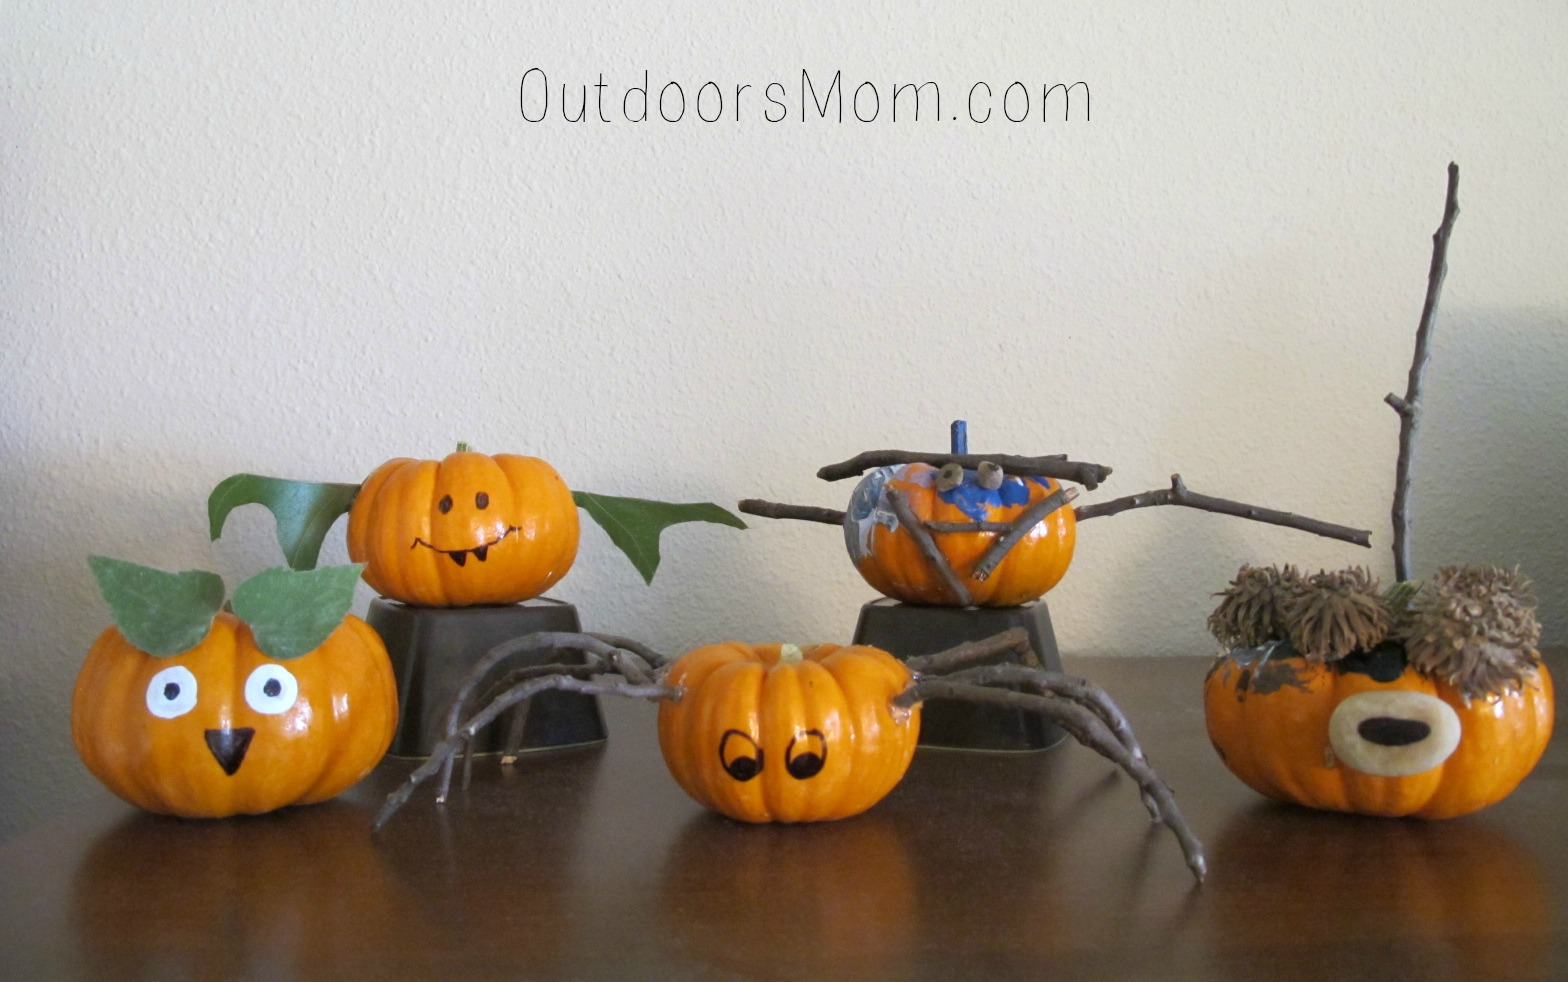 i am always looking for ways to use them in crafts and activities this month i thought it would be fun to use them in decorating pumpkins